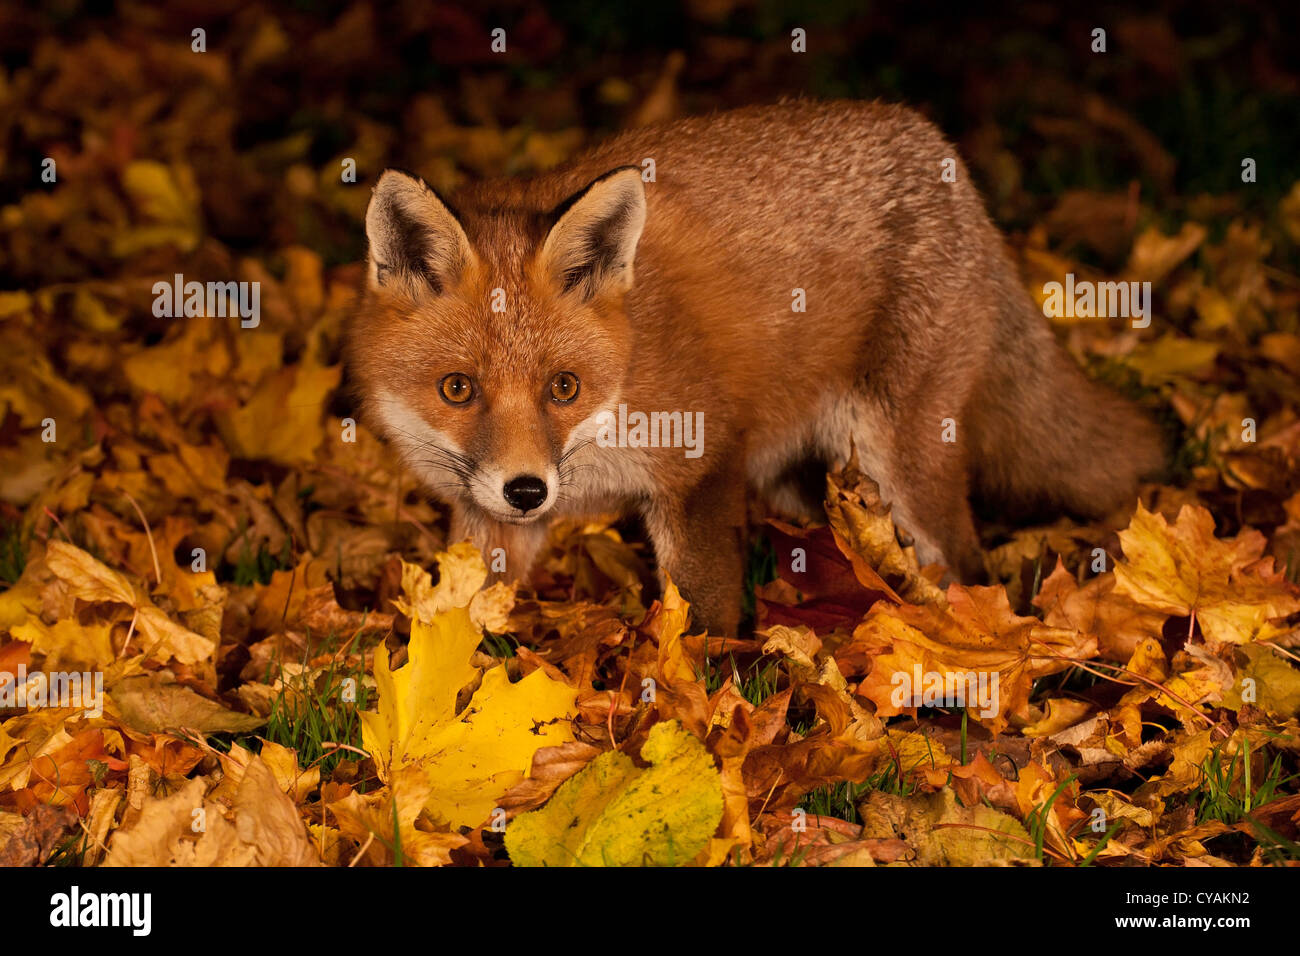 Live Wallpaper Fall Leaves Autumn Fox Stock Photo Royalty Free Image 51251454 Alamy